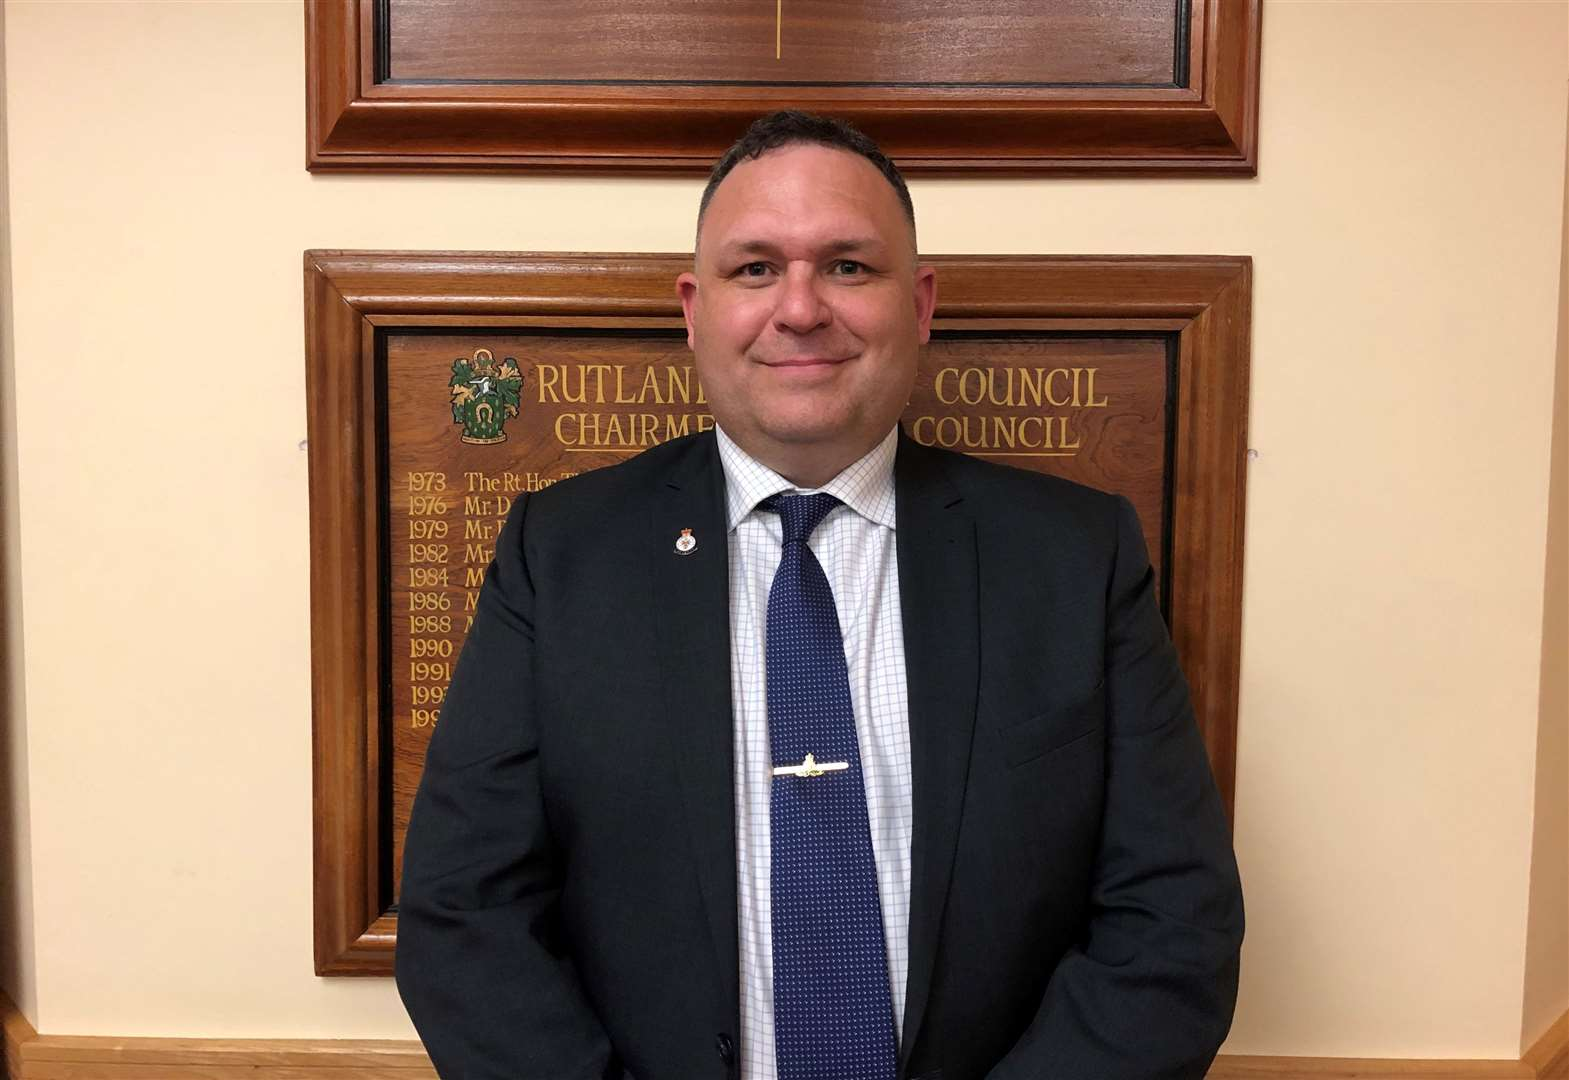 Conservative Party candidate elected for Ryhall and Casterton ward in Rutland County Council by-election